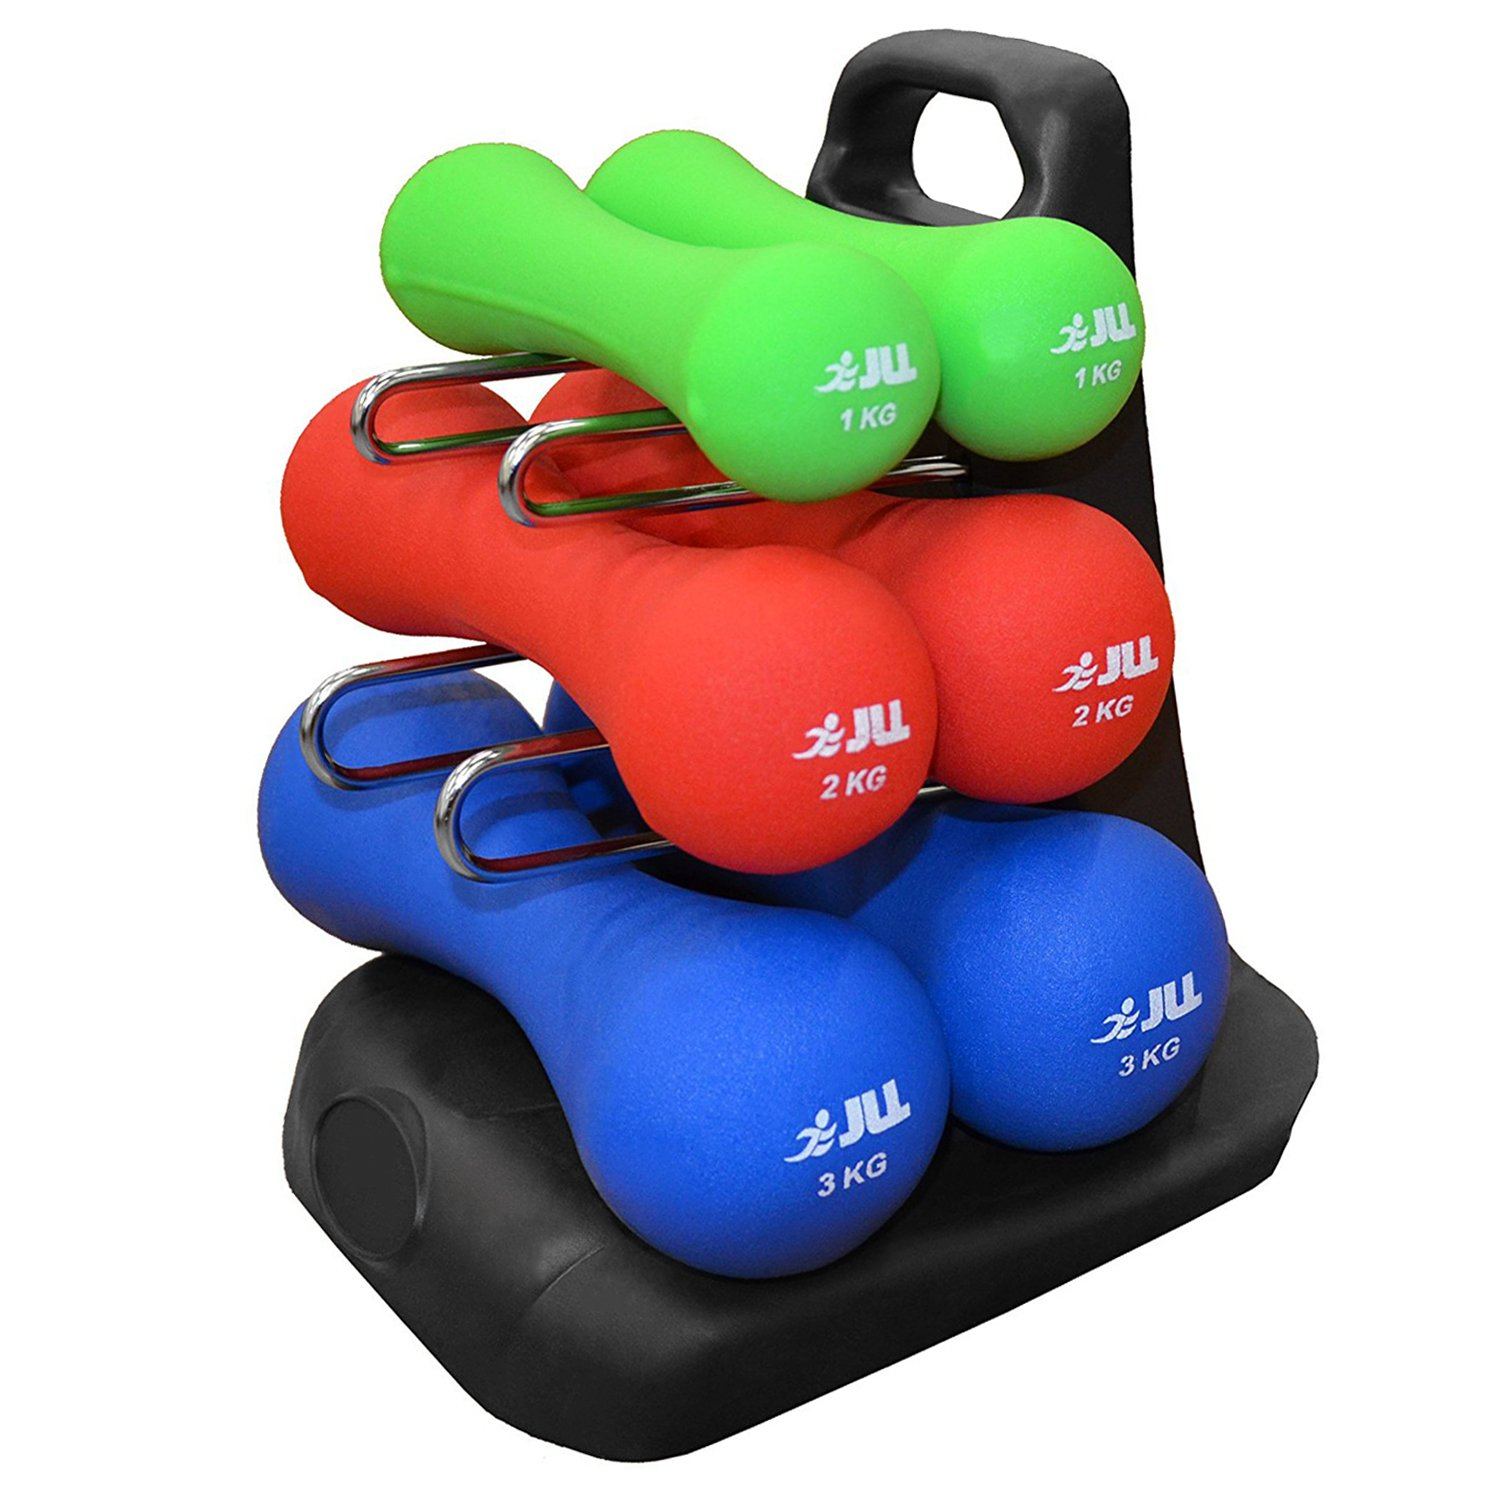 JLL® Ergonomic Neoprene Dumbbells Set Hand Weight Exercise Fitness Home Gym